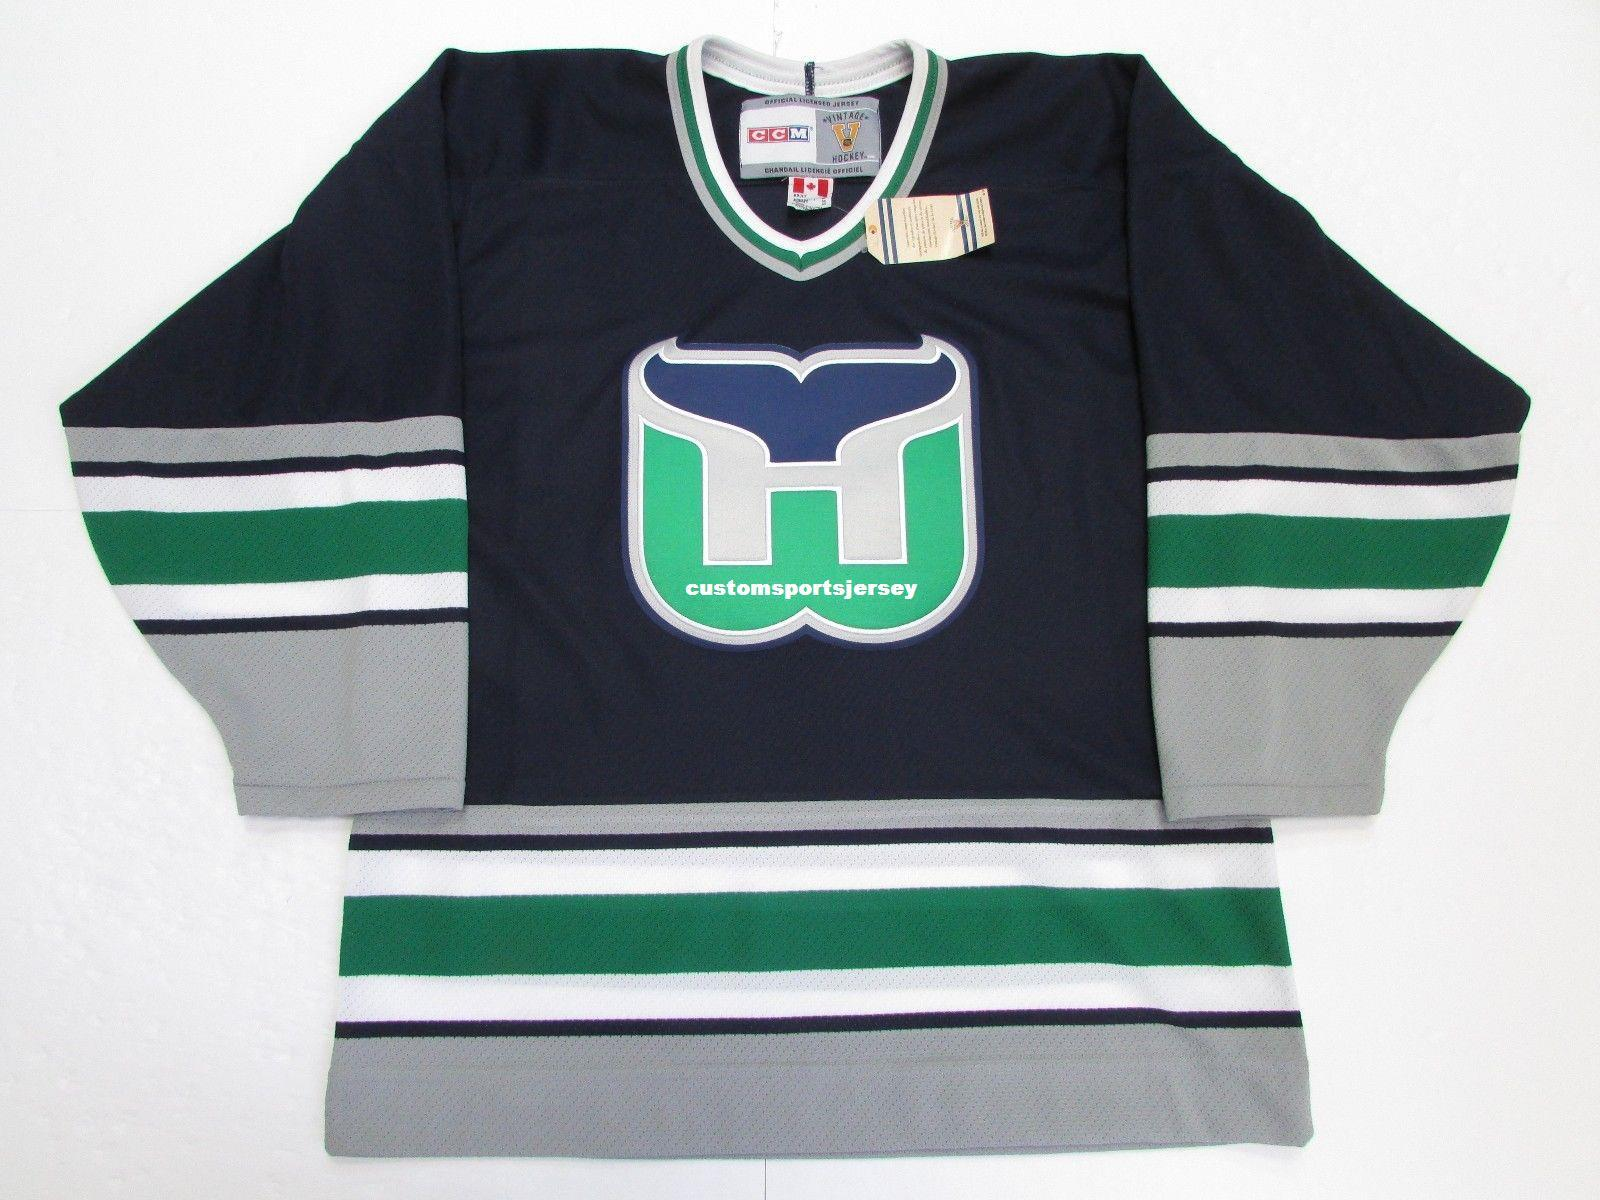 2019 Cheap Custom HARTFORD WHALERS NAVY VINTAGE CCM HOCKEY JERSEY SIZE  MEDIUM Stitch Add Any Number Any Name Mens Hockey Jersey XS 5XL From ... 332a7a4e8